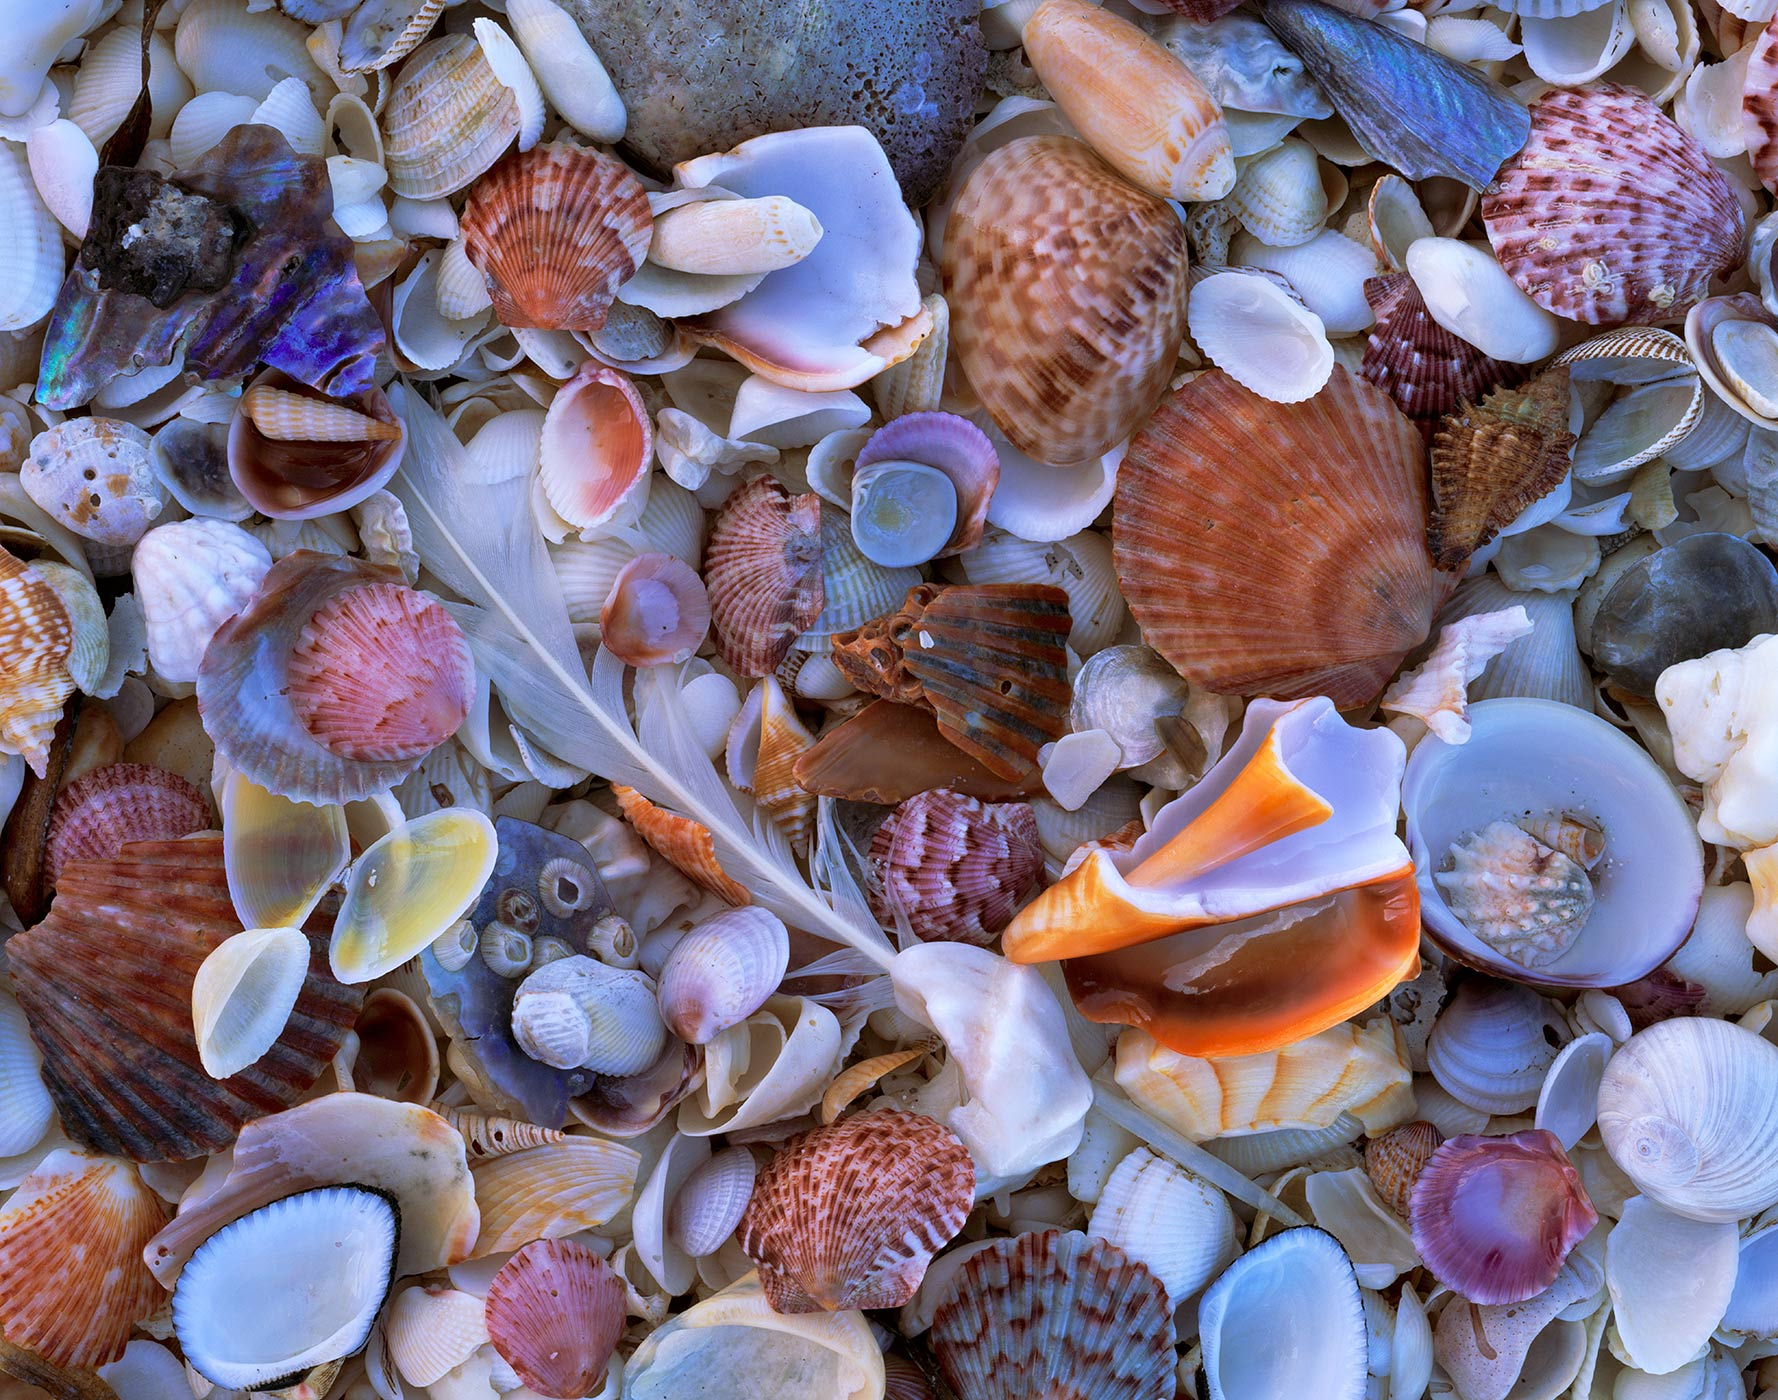 511 Shell Collection, Sanibel-Captiva Islands, Florida